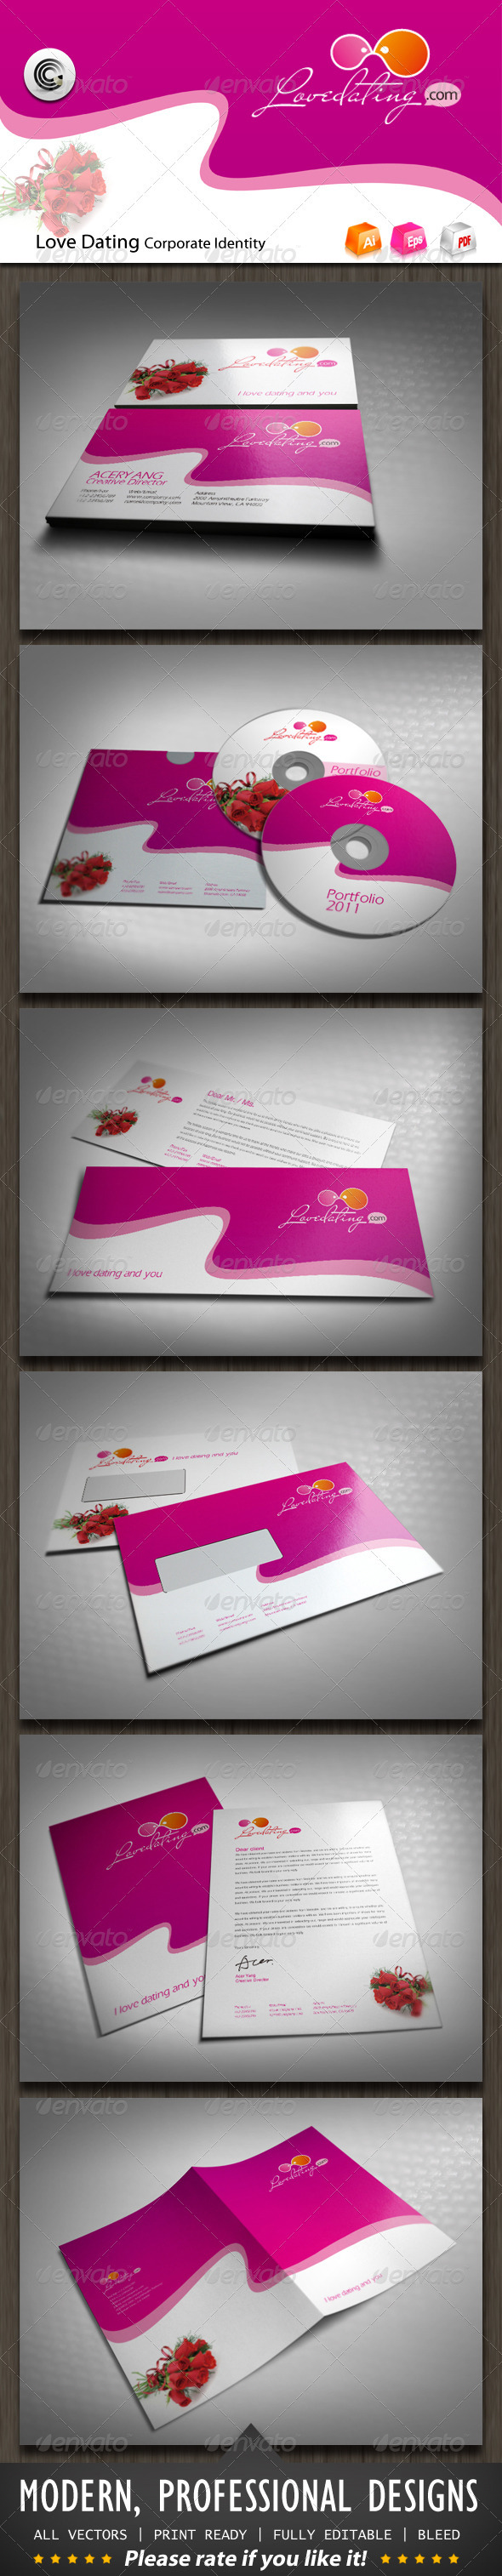 Love Dating Corporate Identity - Stationery Print Templates